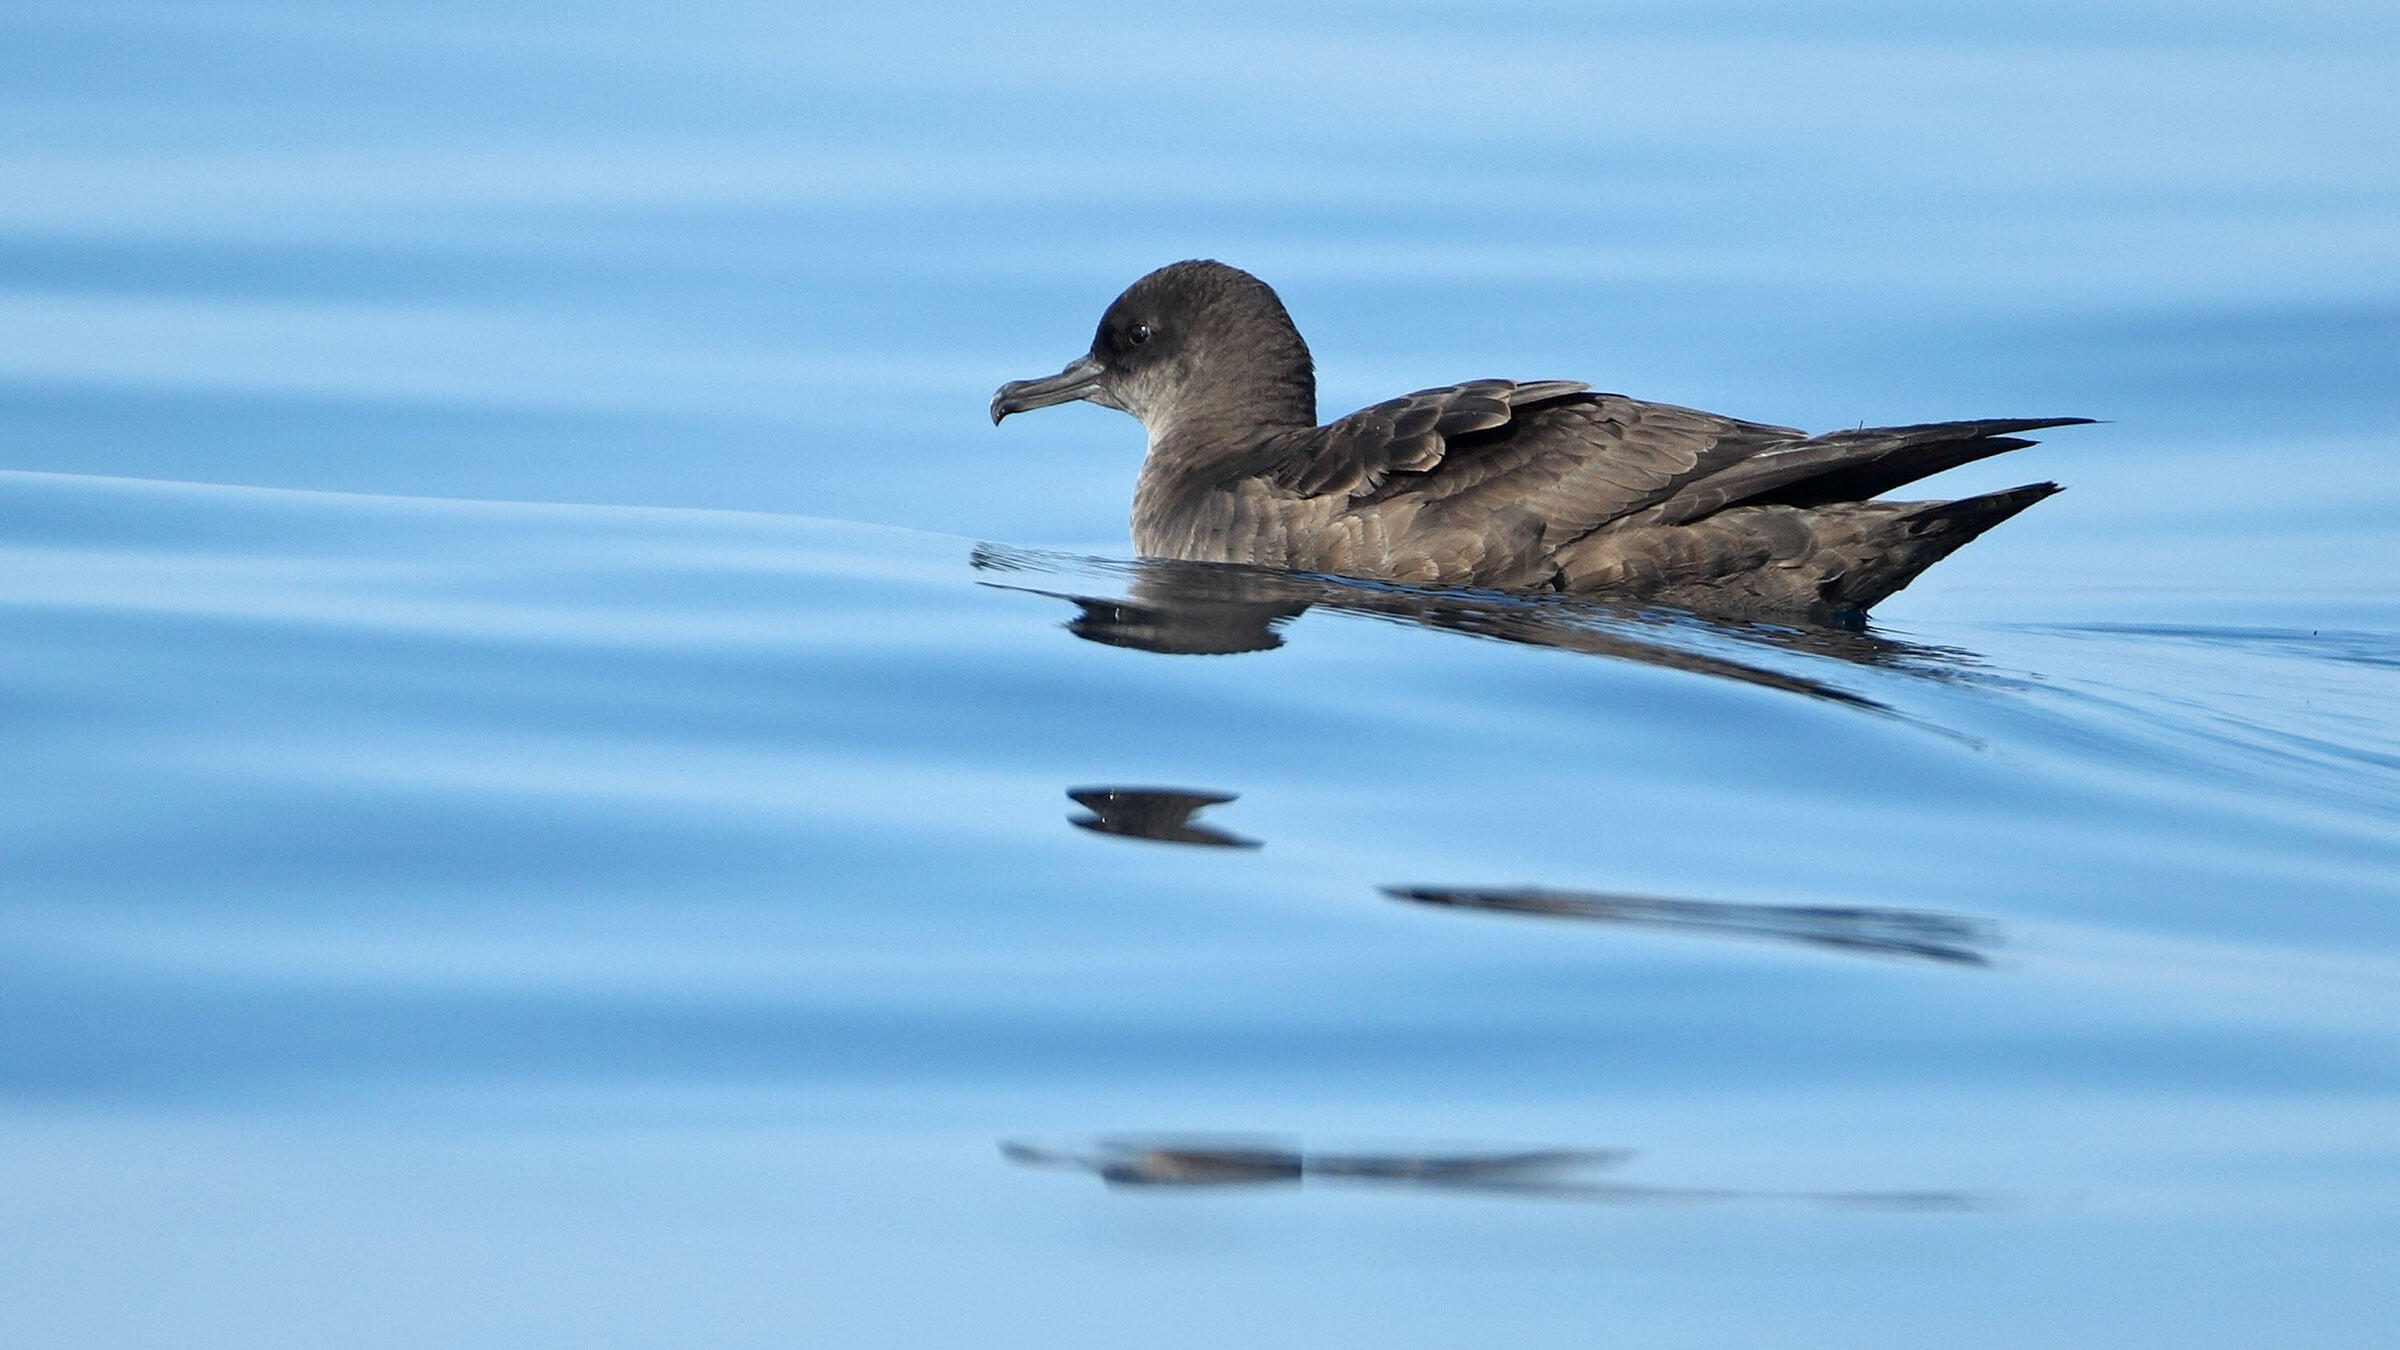 As ocean temperatures rise, plankton density has dropped—leading to less fishy food for Sooty Shearwaters in the California Current. Robin Chittenden/Minden Pictures